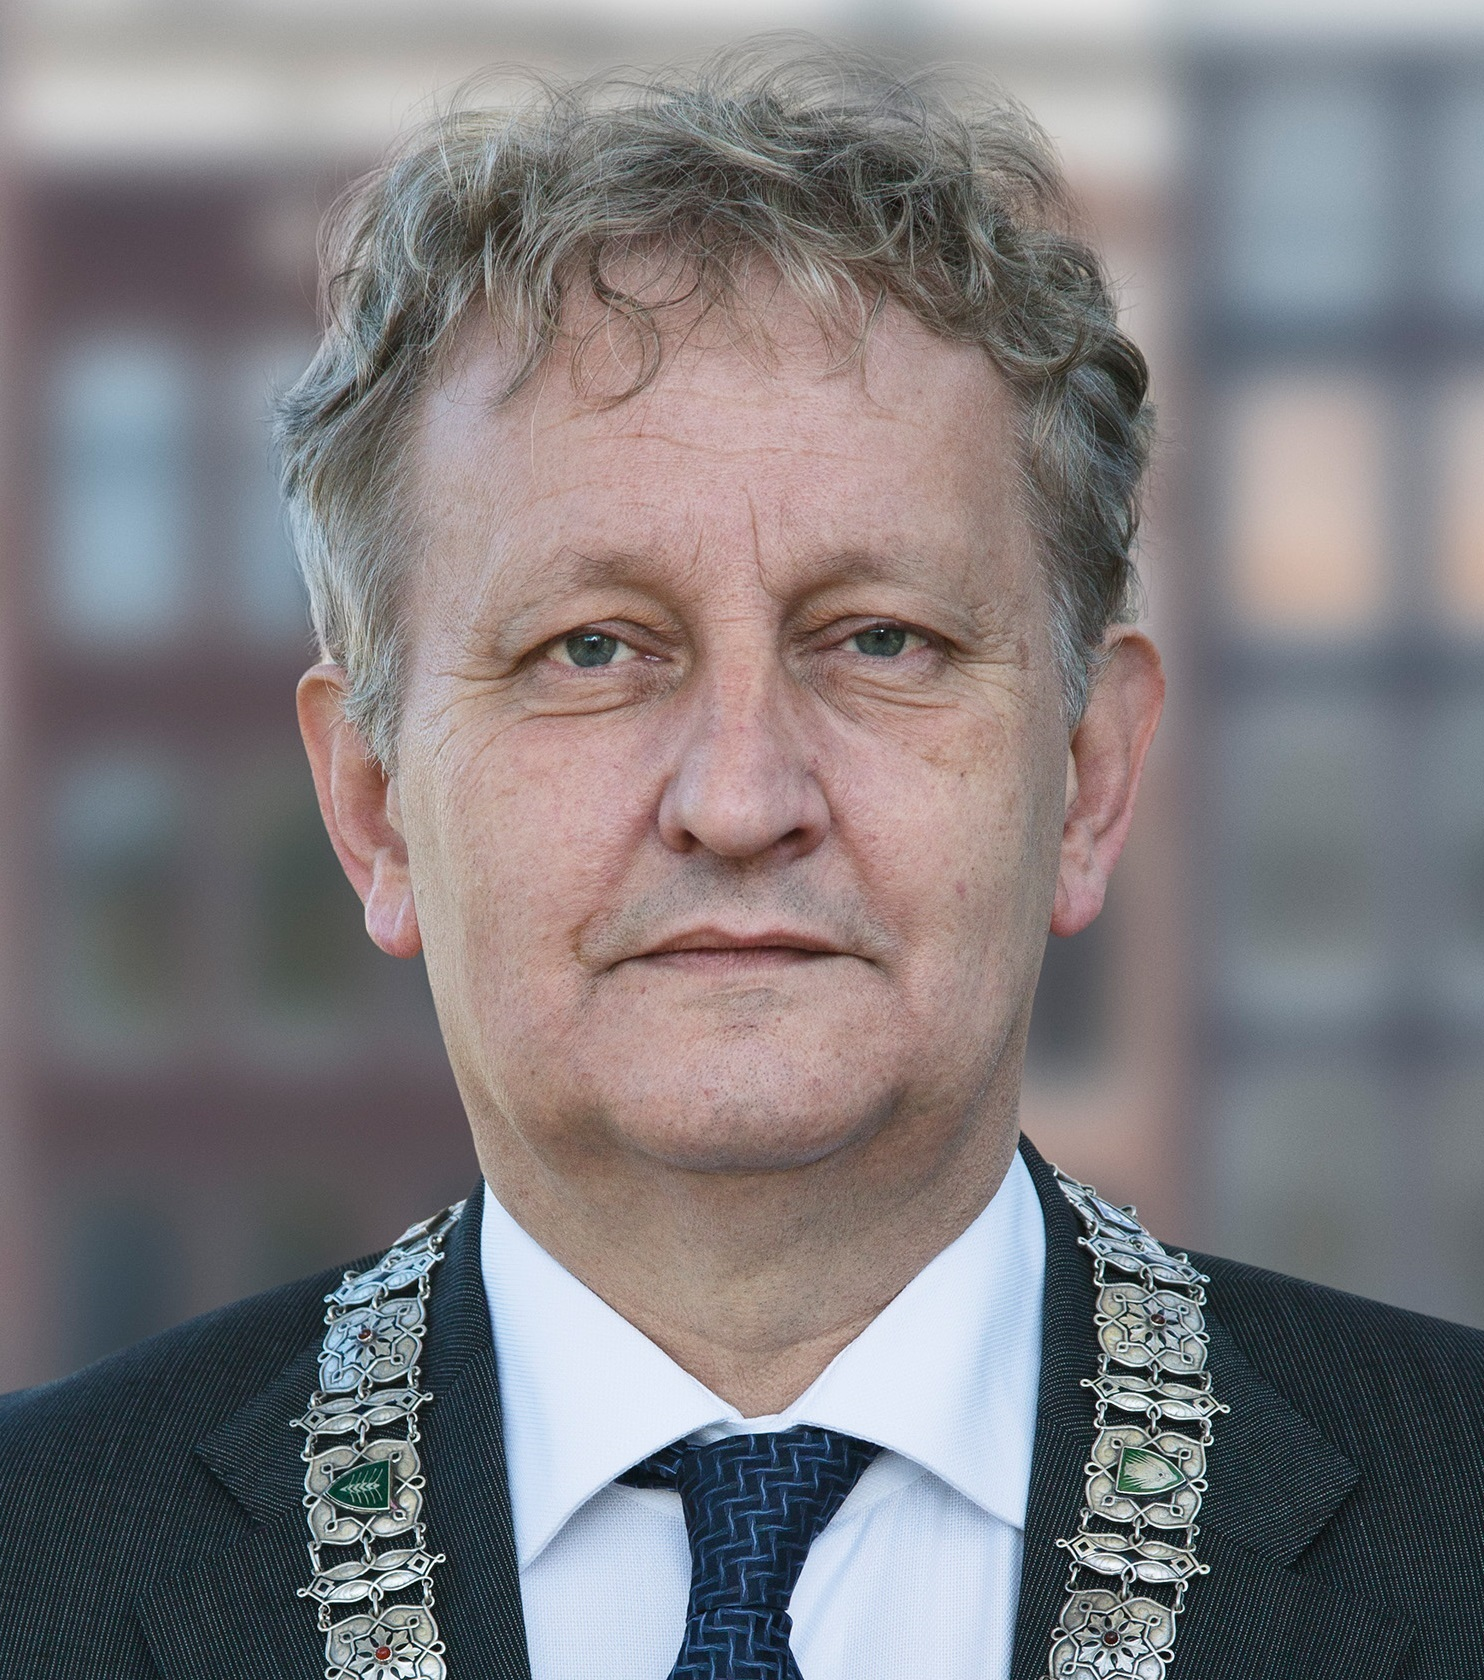 The 65-year old son of father (?) and mother(?) Eberhard van der Laan in 2020 photo. Eberhard van der Laan earned a million dollar salary - leaving the net worth at 0.9 million in 2020